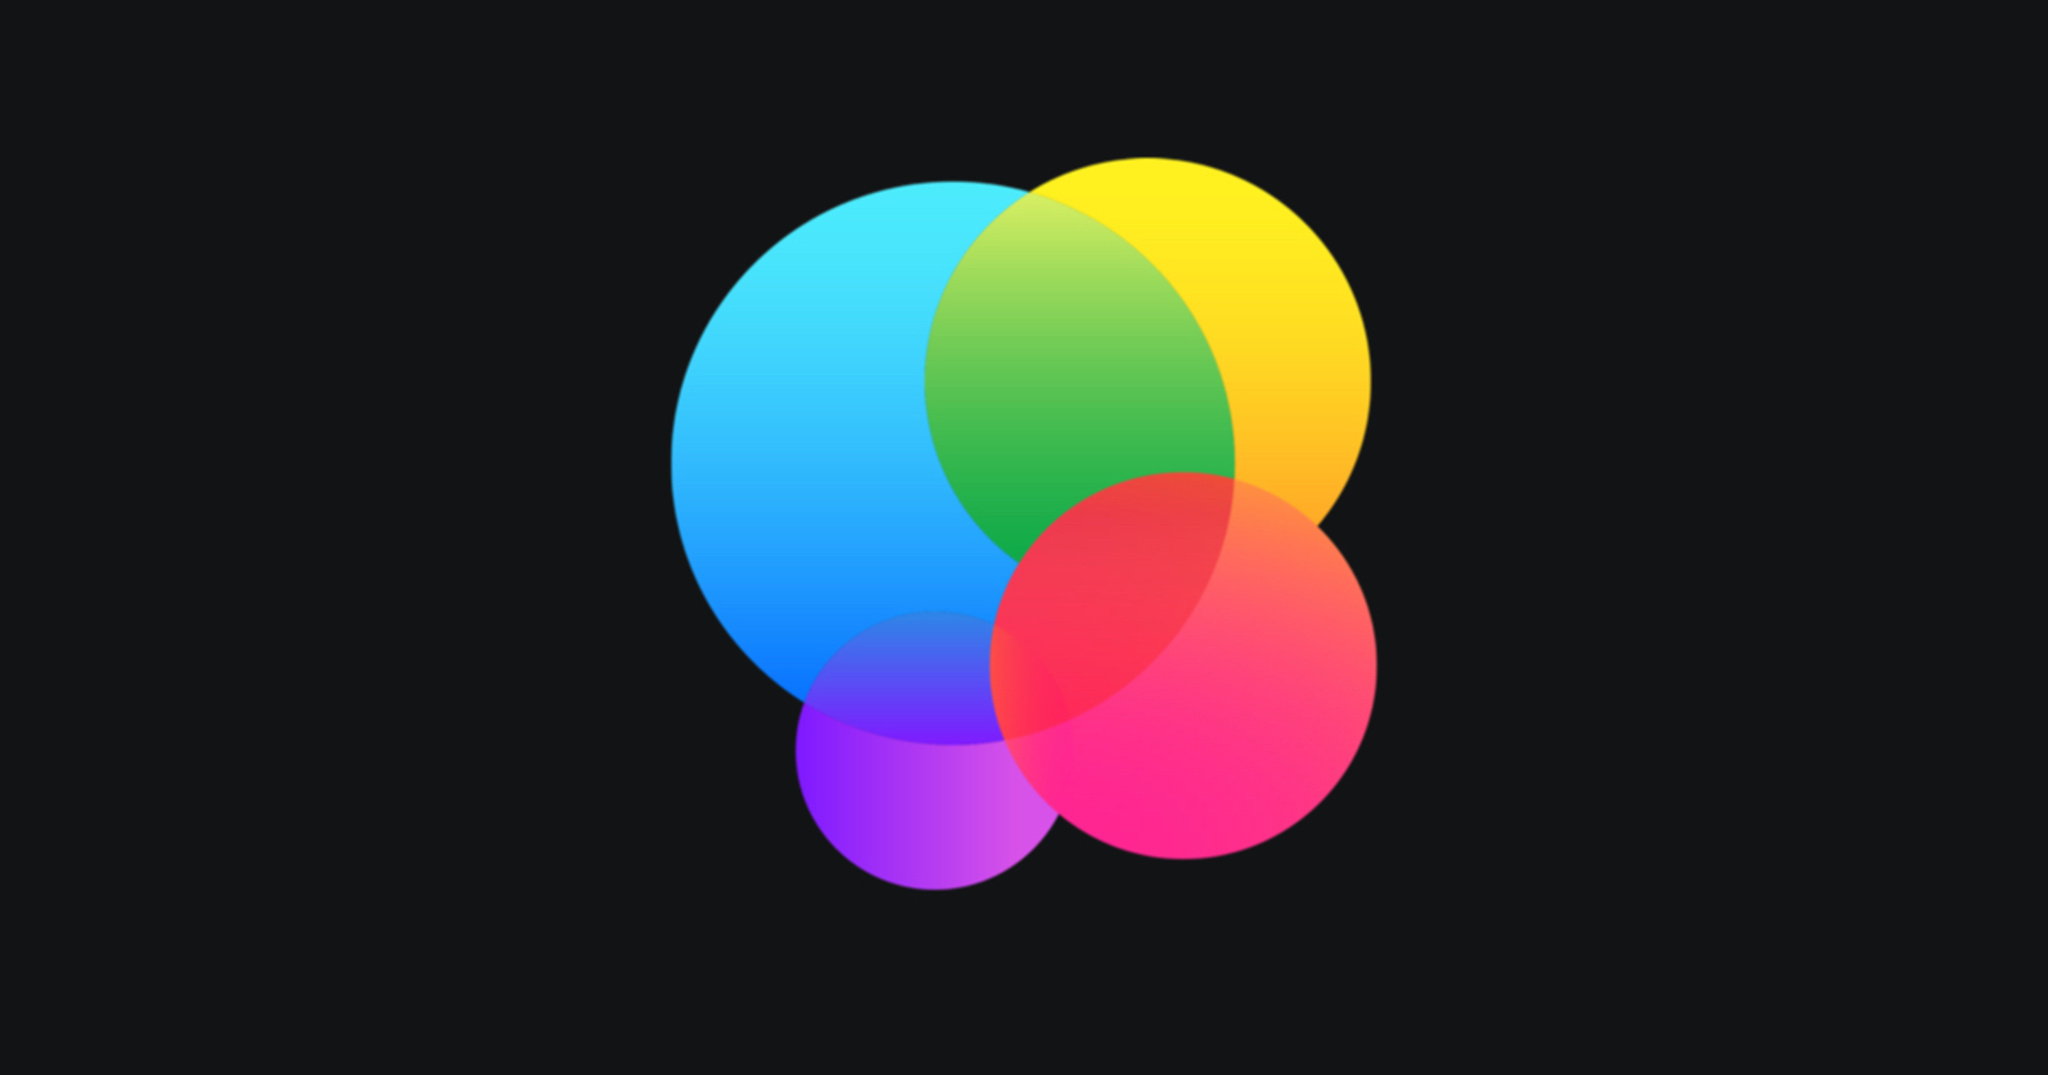 Icon for Game Center, Apple's social gaming network